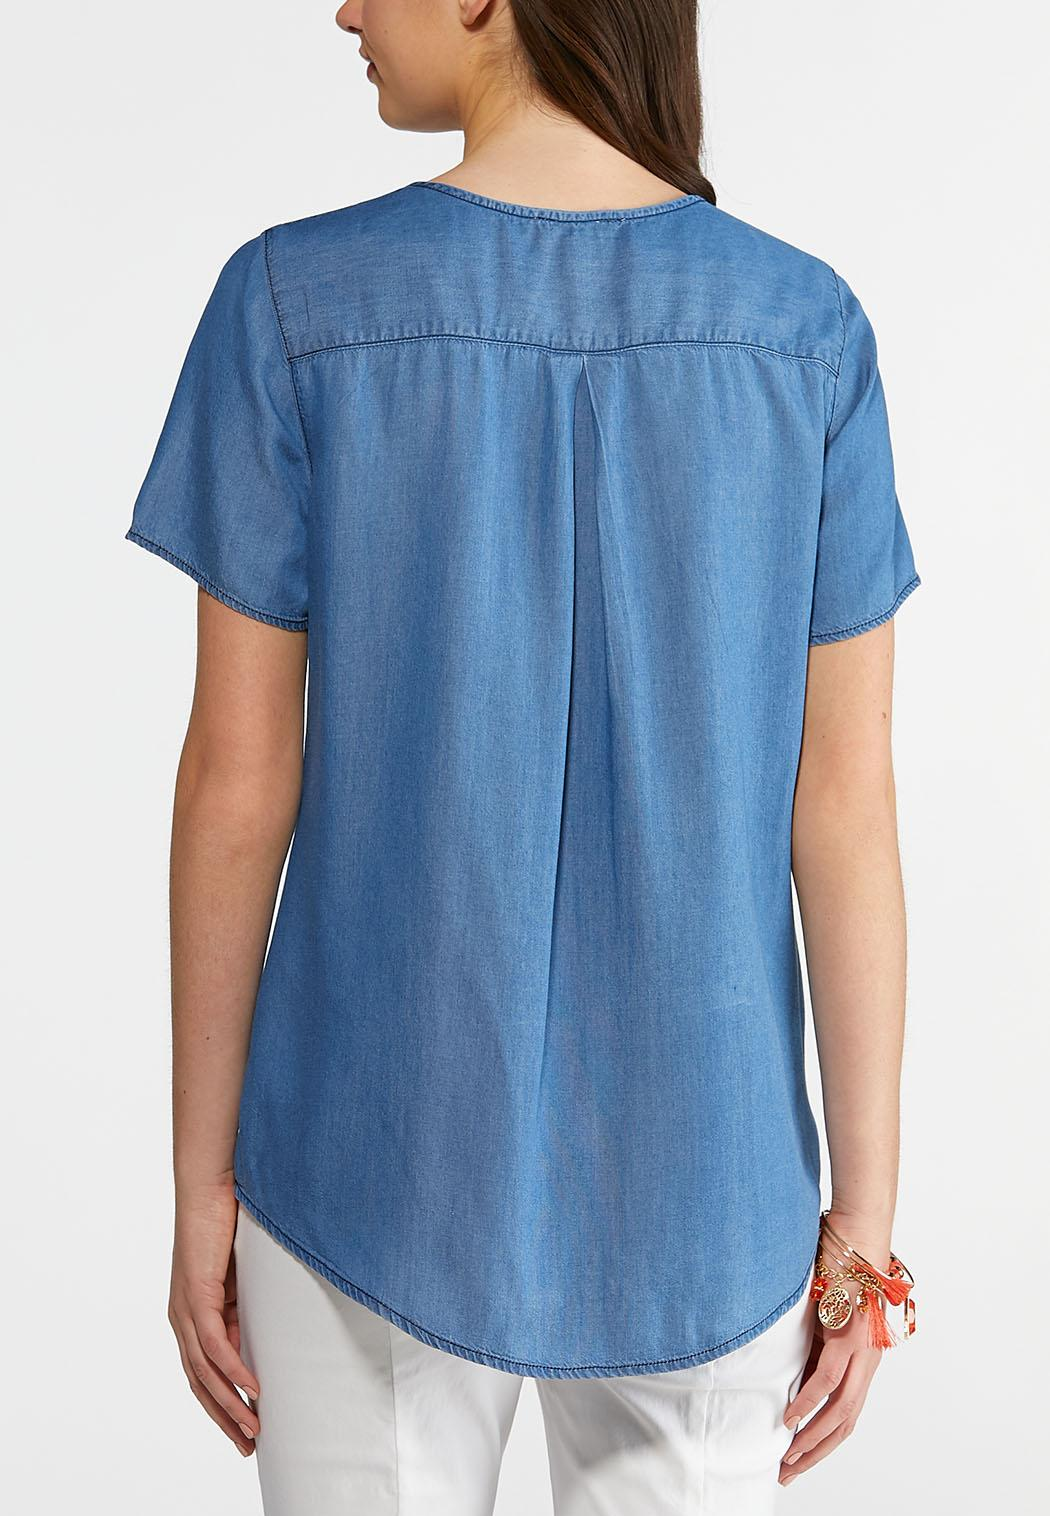 Plus Size Embellished Chambray Top (Item #43844640)